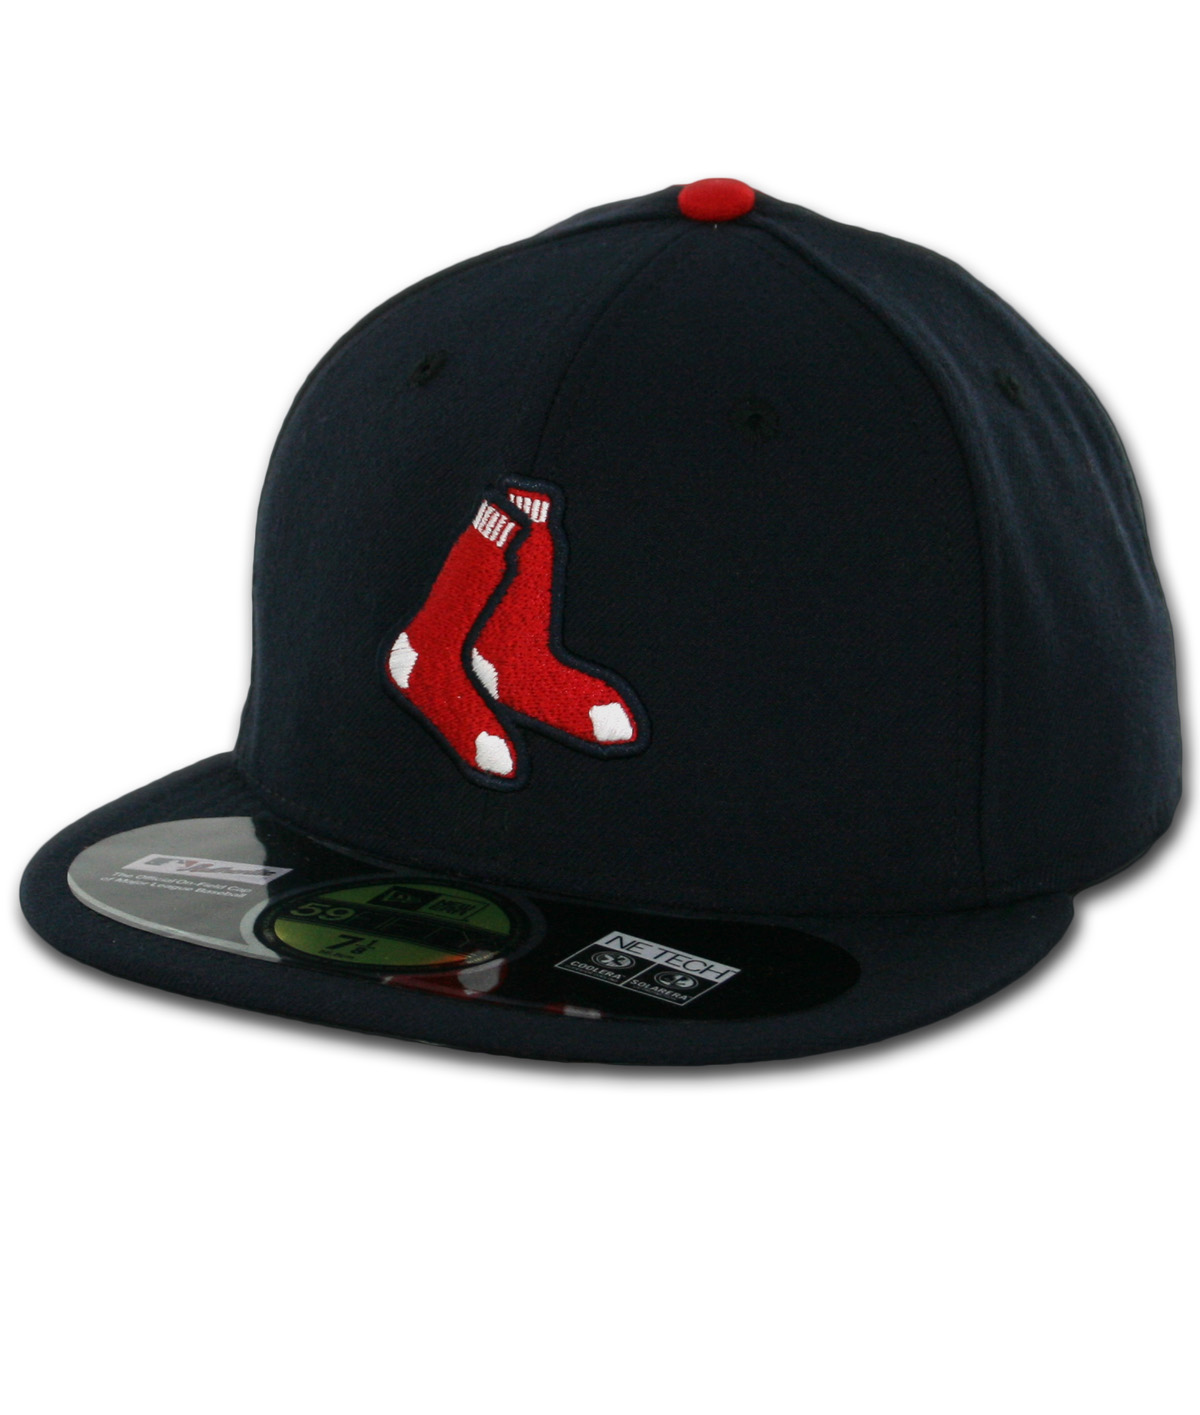 New Era 59Fifty Boston Red Sox 2016 Alternate Authentic On Field Fitted Hat  - Billion Creation Streetwear bbac1eb3246